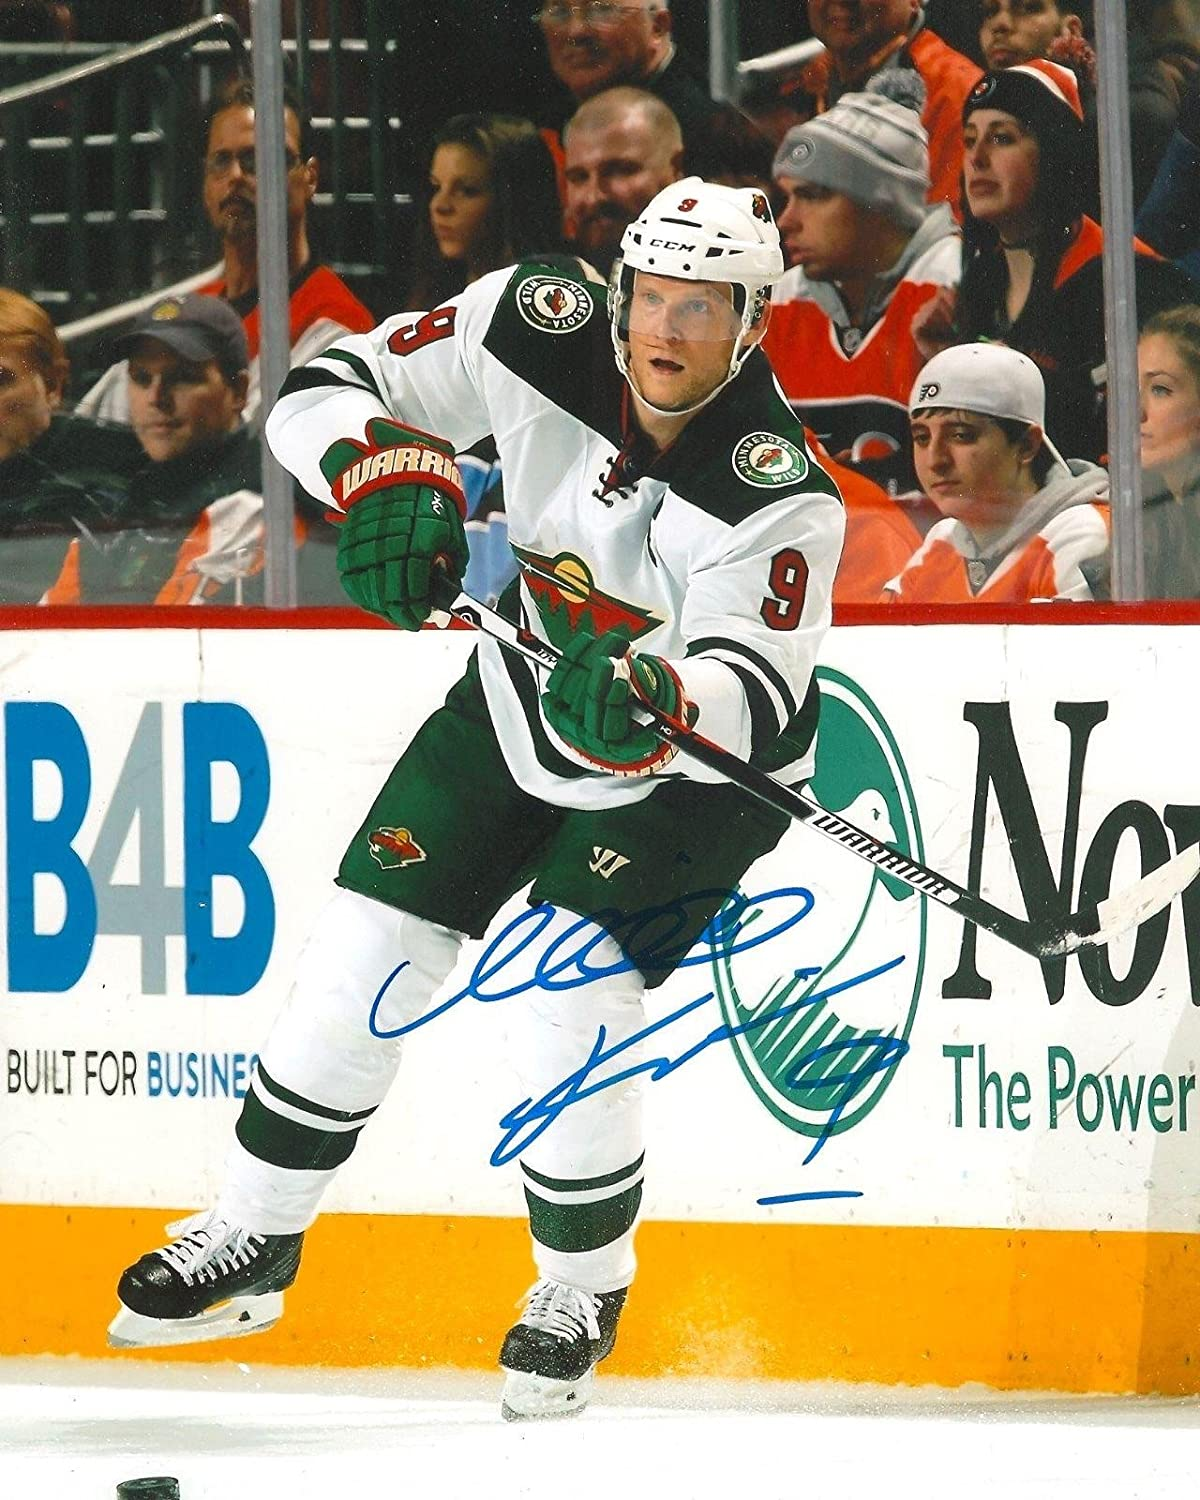 Mikko Koivu Autographed Photo  8X10 w COA E  Autographed NHL Photos